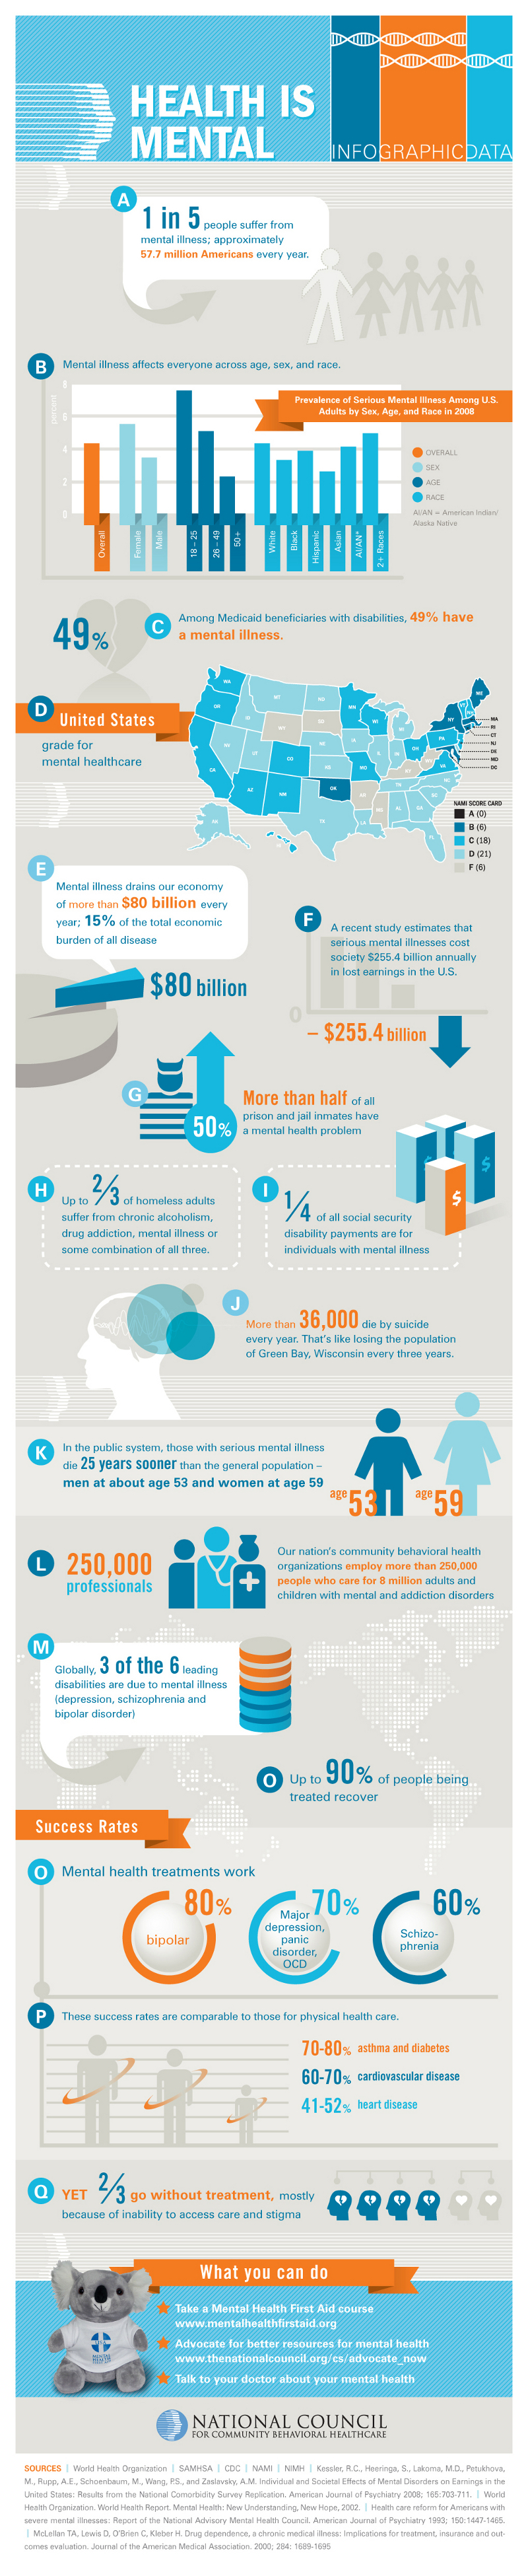 Mental Health Trends and Statistics